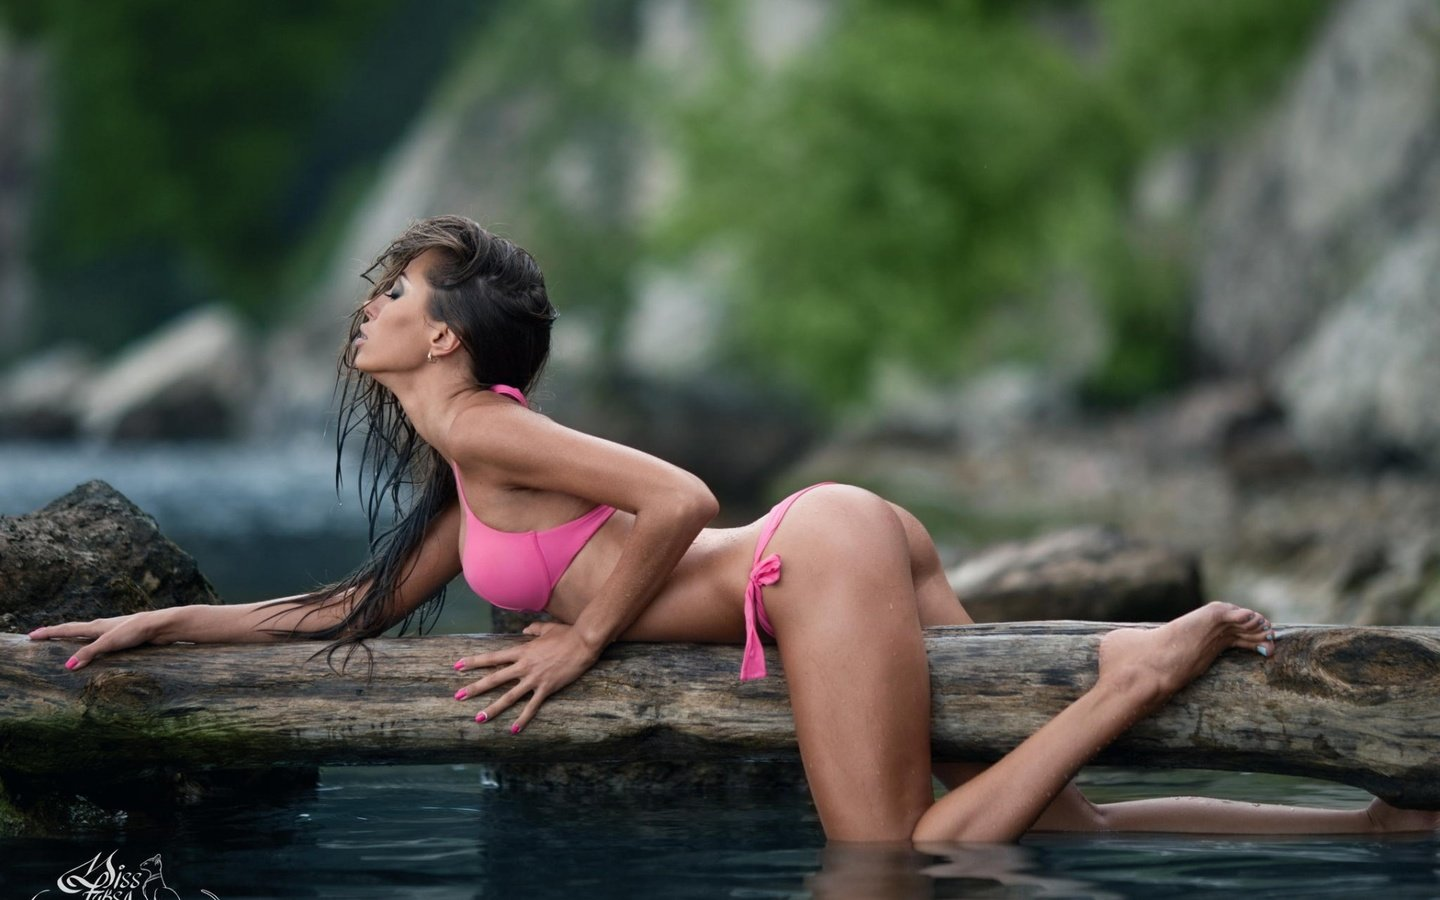 hottest girl with perfect body № 47874